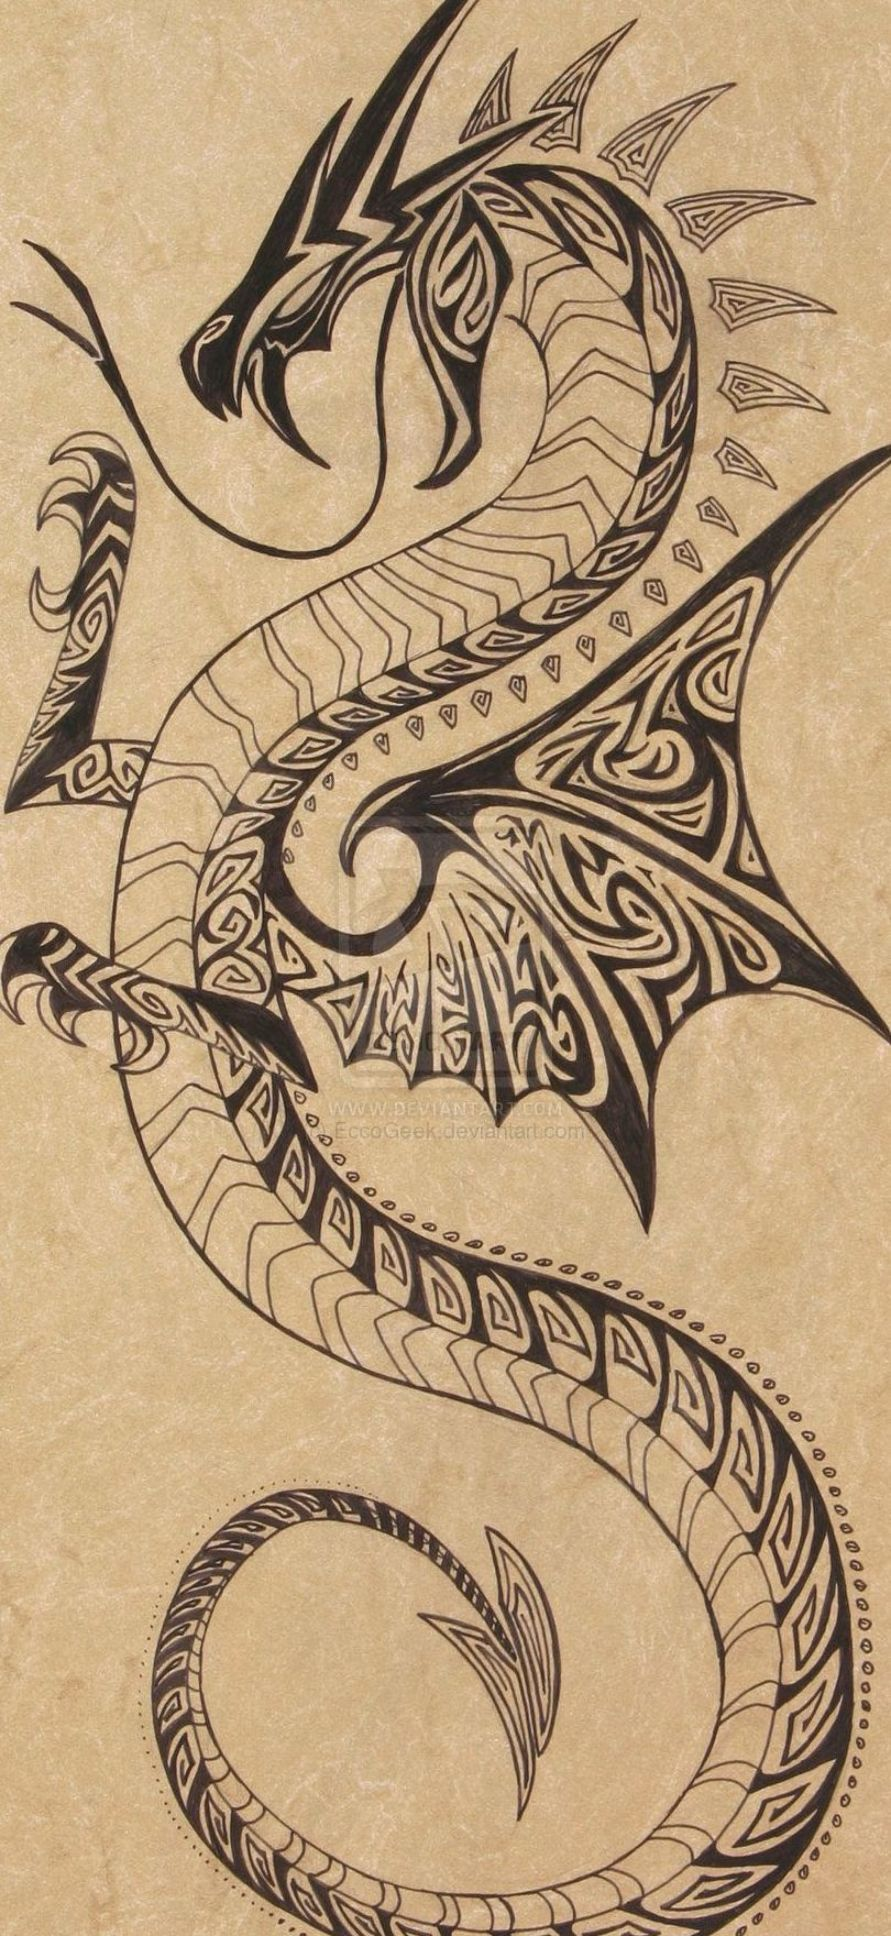 Image Result For Norse Sea Serpent Tattoo In 2020 Serpent Tattoo Celtic Dragon Tattoos Viking Dragon Tattoo